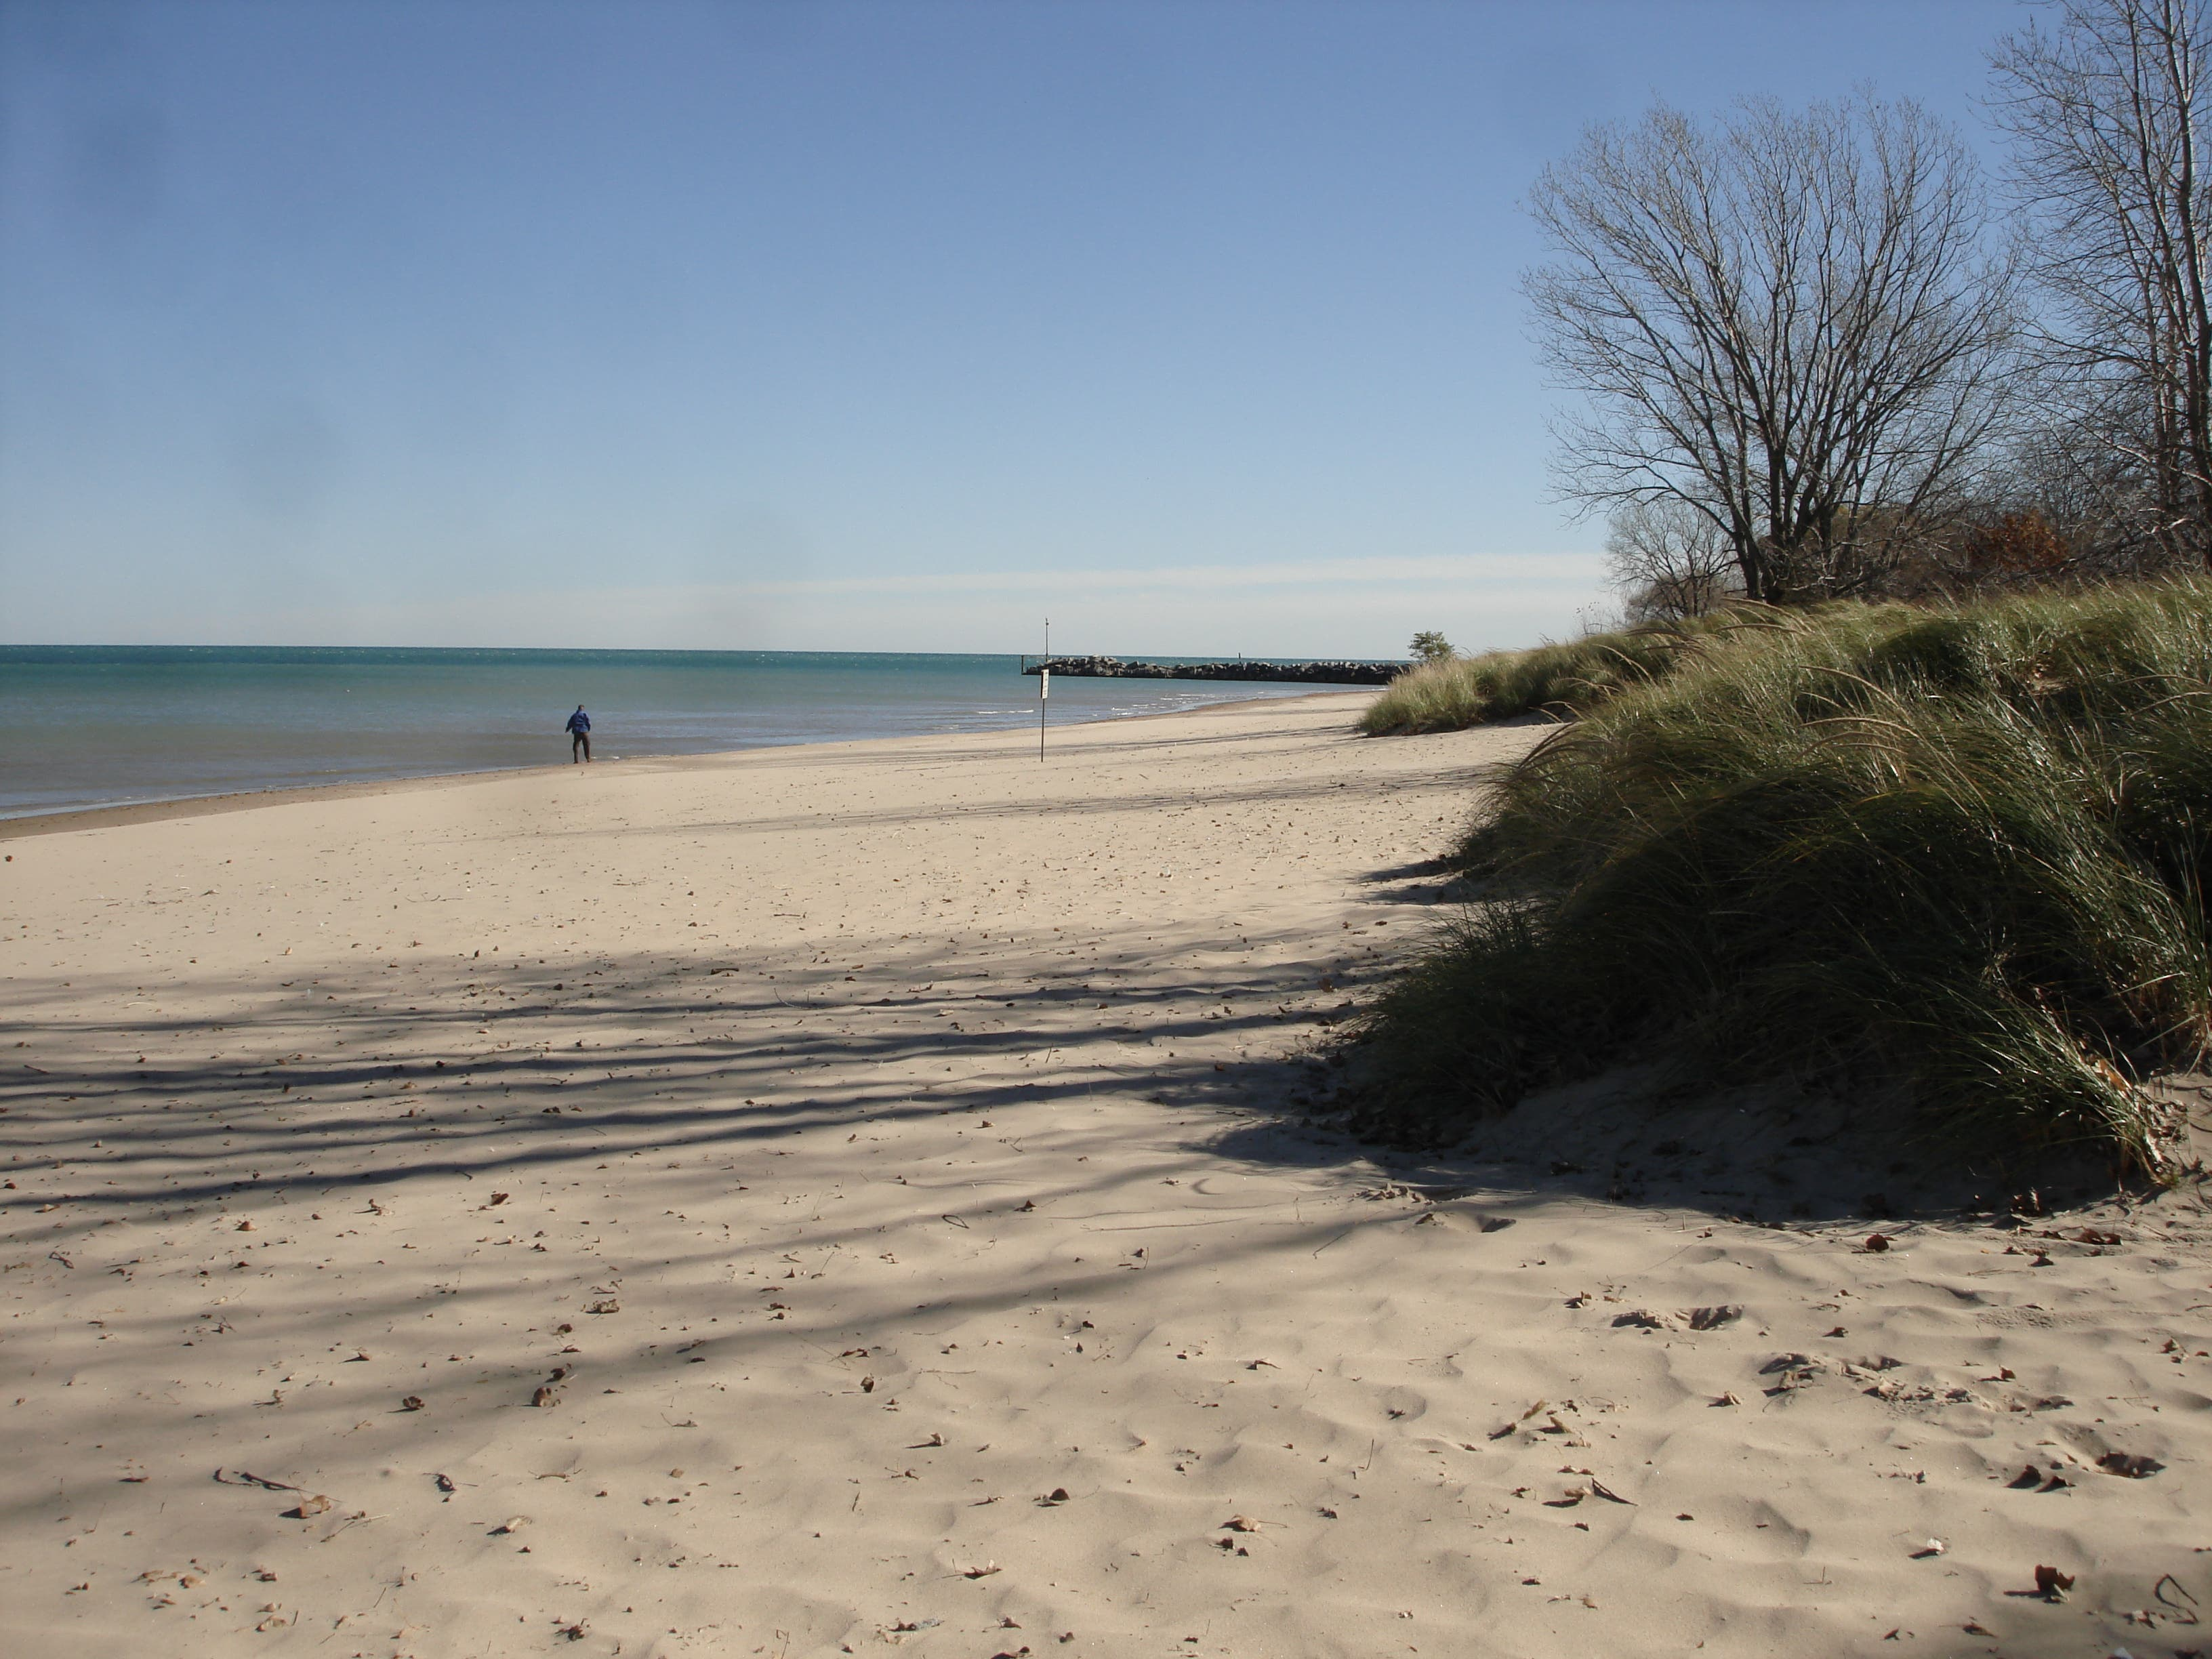 Paddle Board Users Moved to South End of Gillson Park Beach